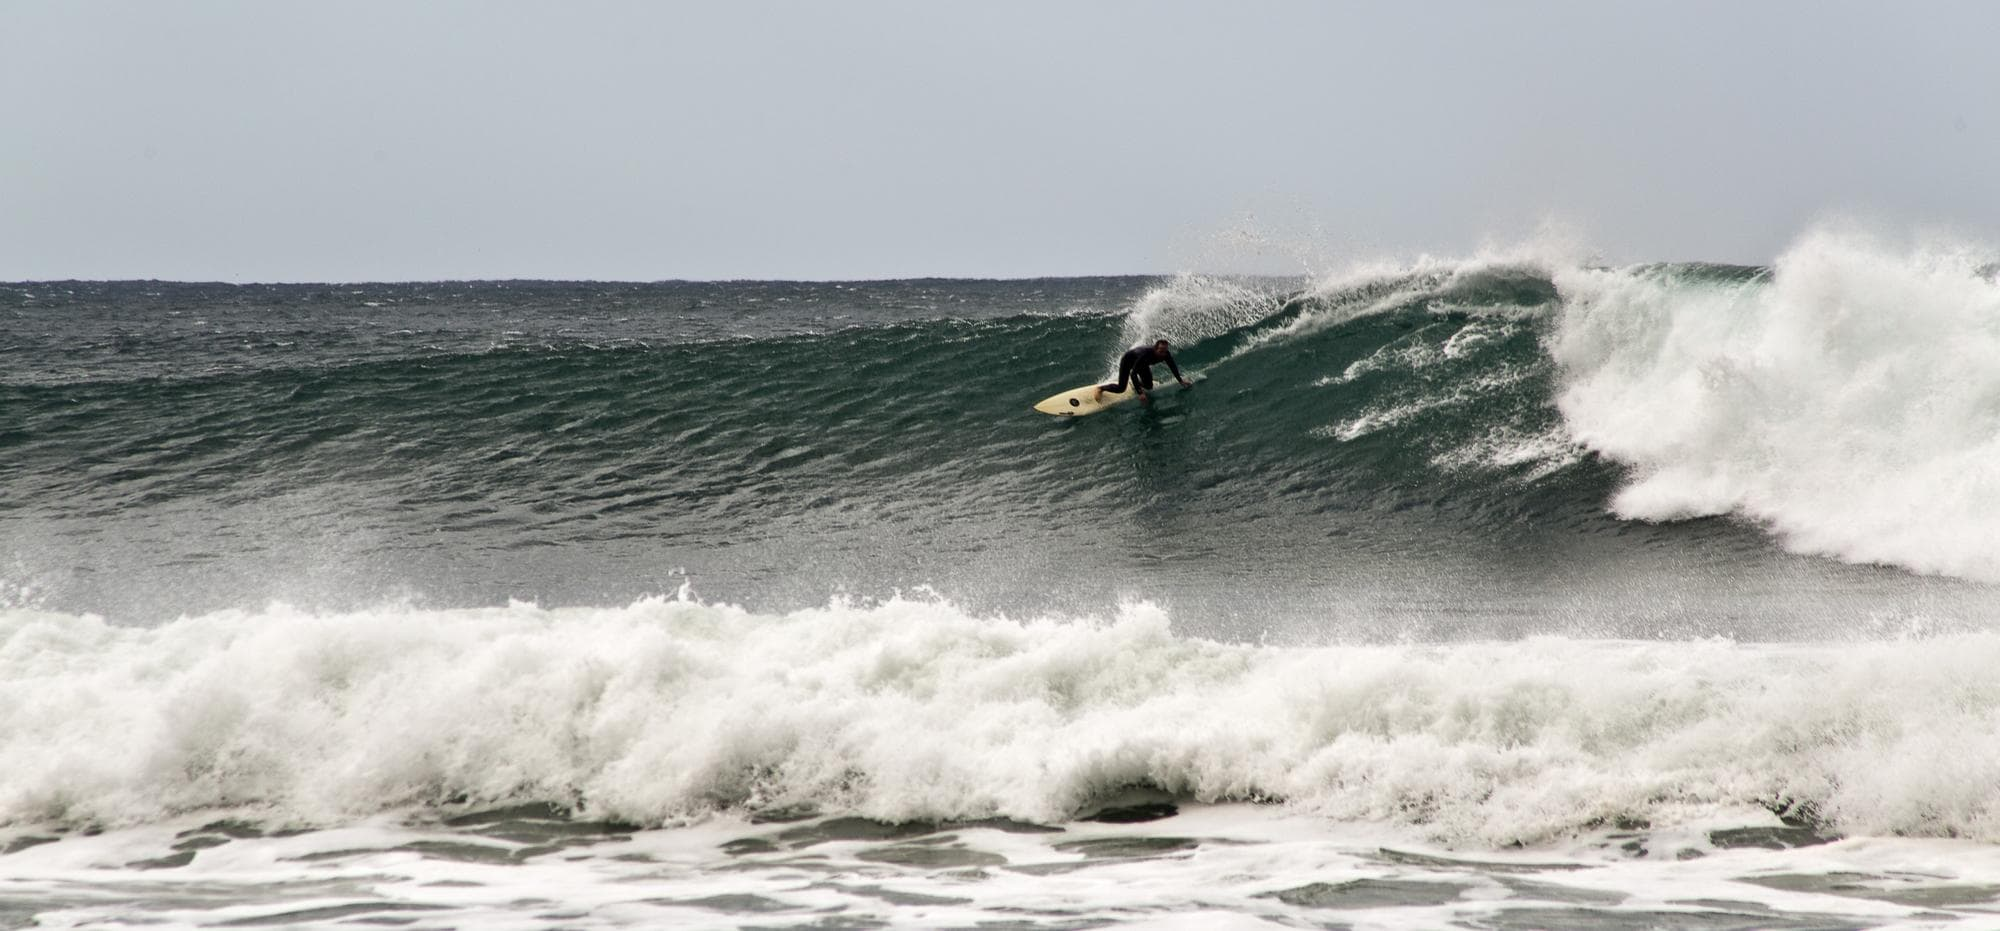 Surfer on a wave at Bells Beach